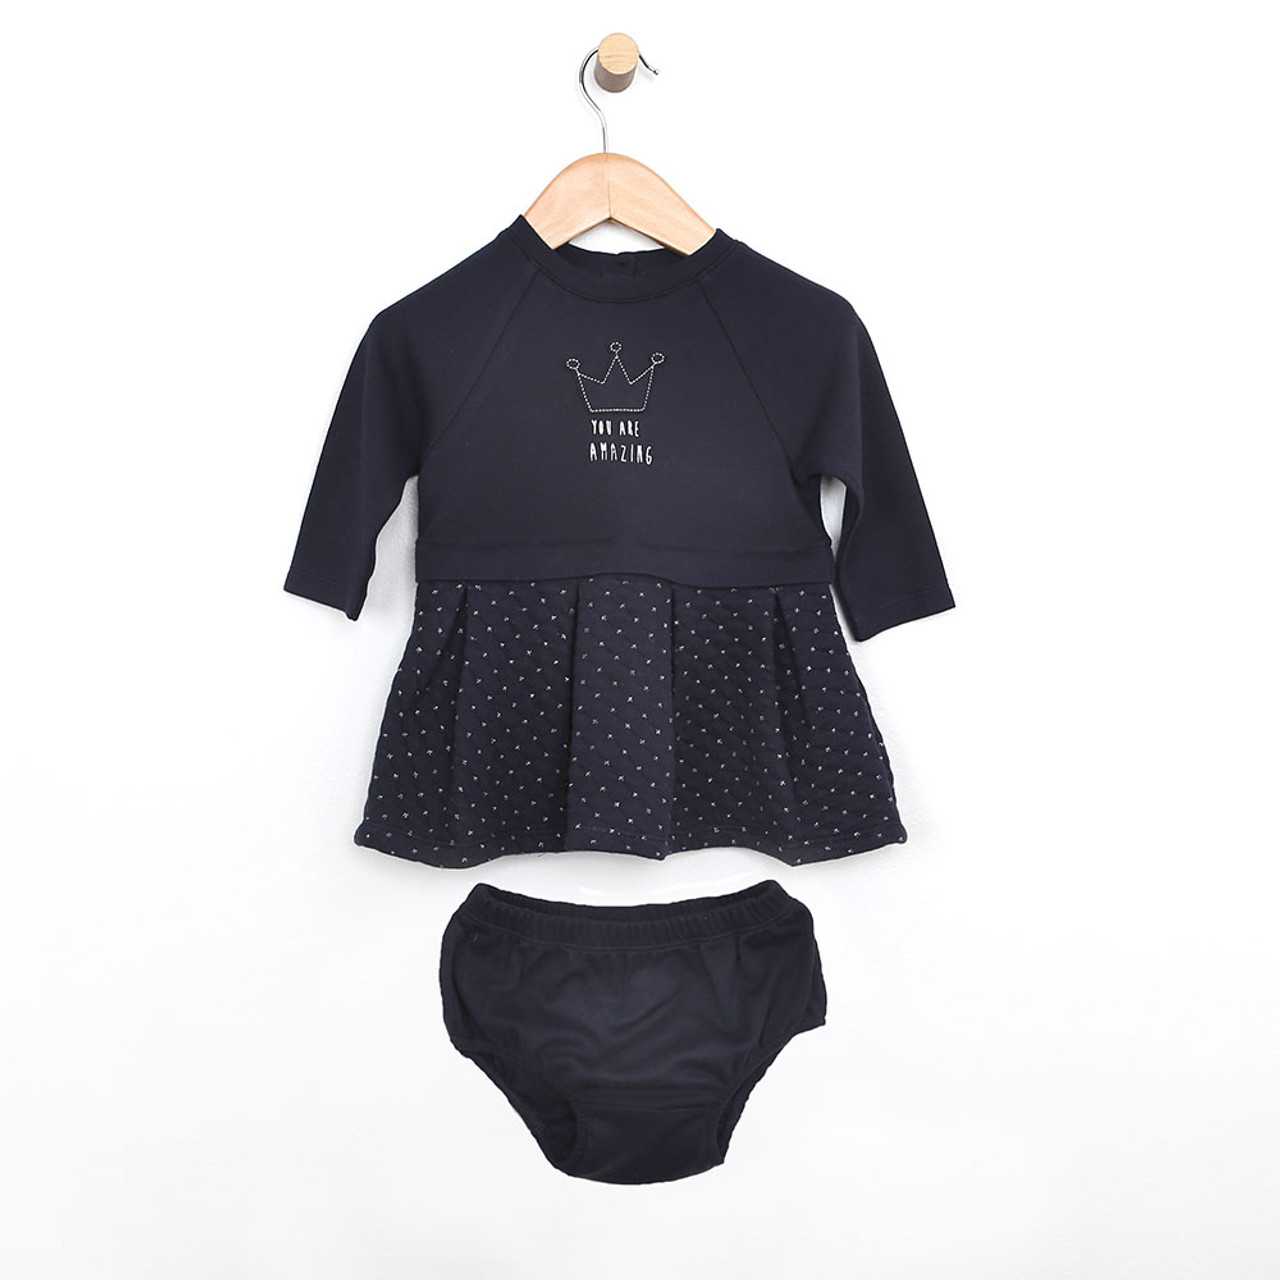 430b135e9 Dress for baby, infant and toddler girls. Navy blue quilted dress with diaper  cover